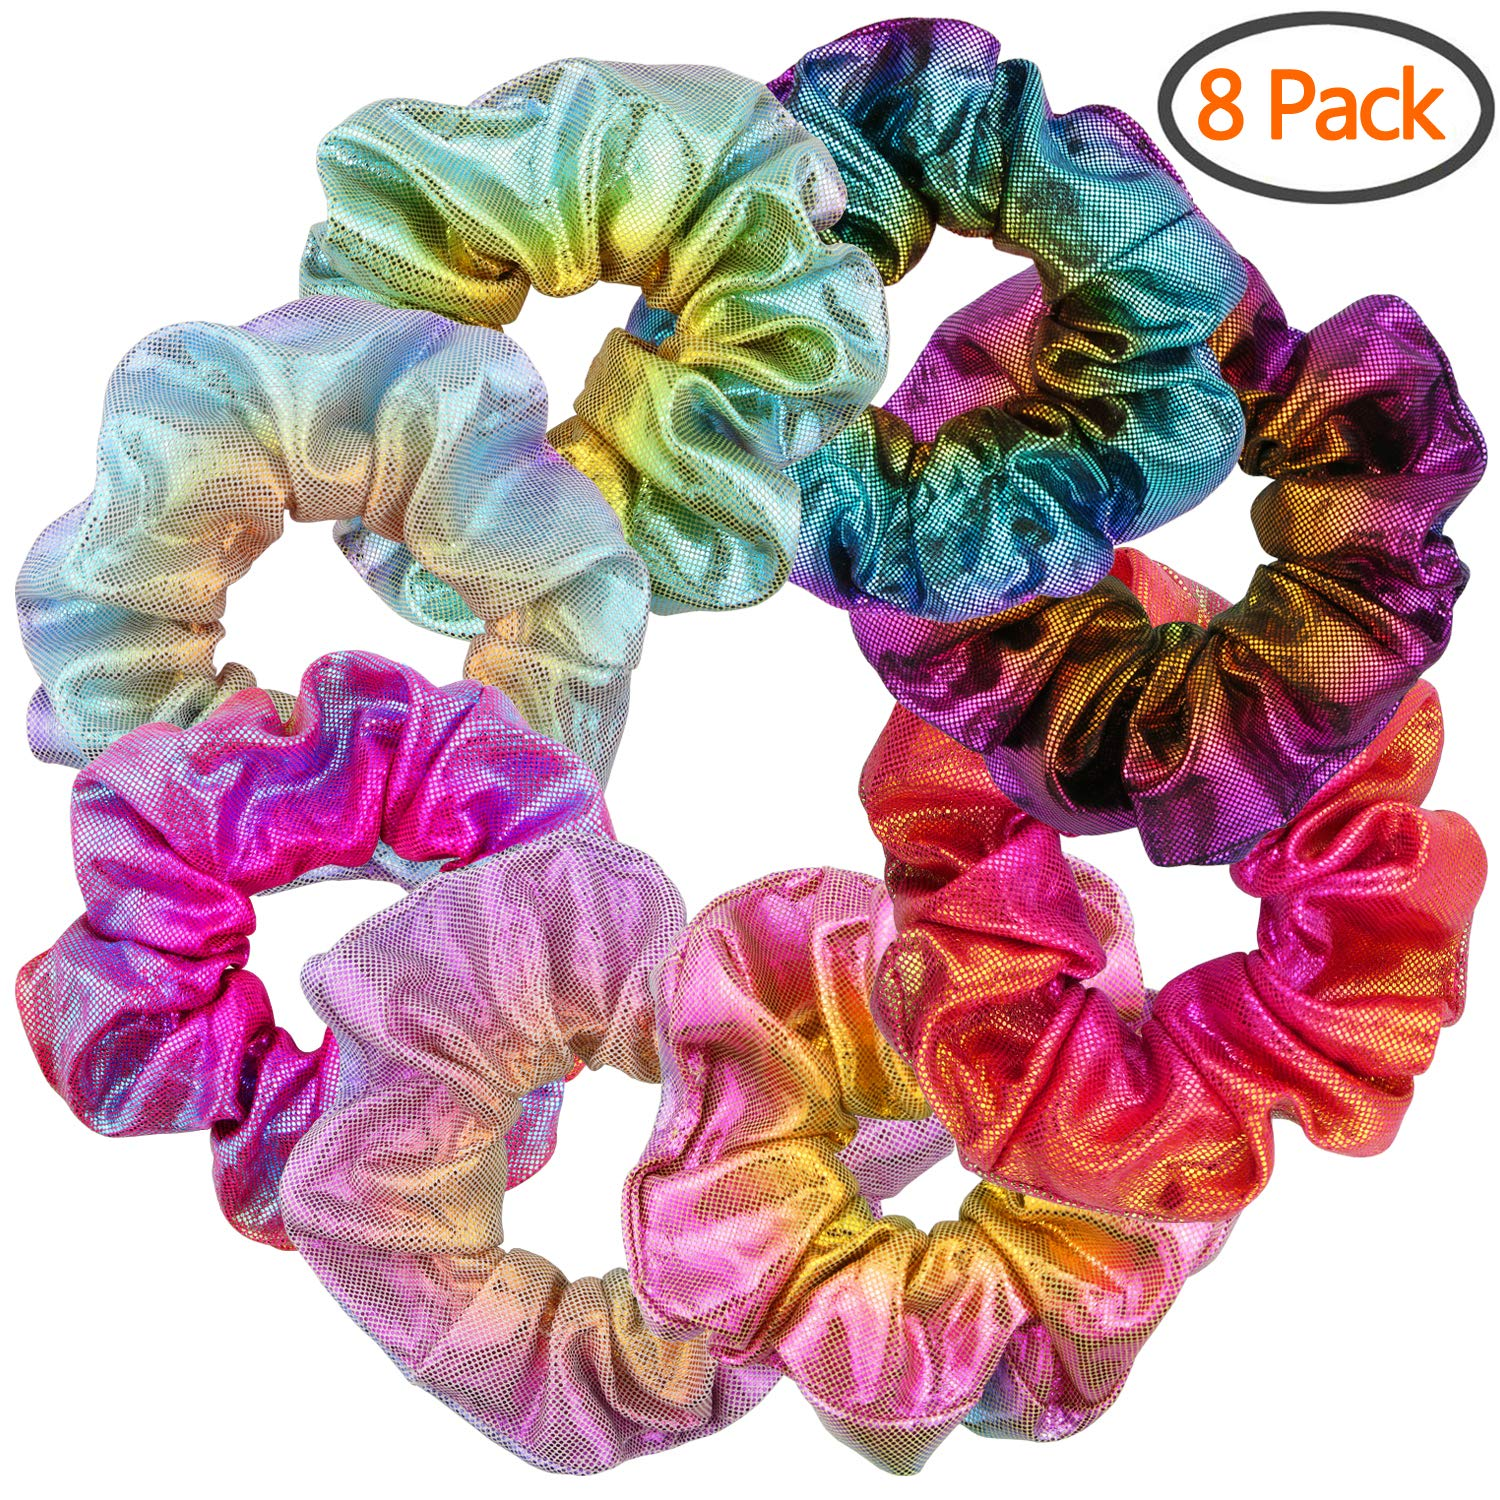 BETITETO Women Girls Mermaid Hair Elastics Shiny Metallic Scrunchies Ponytail Holders for Gym Dance Party Club, Set of 8